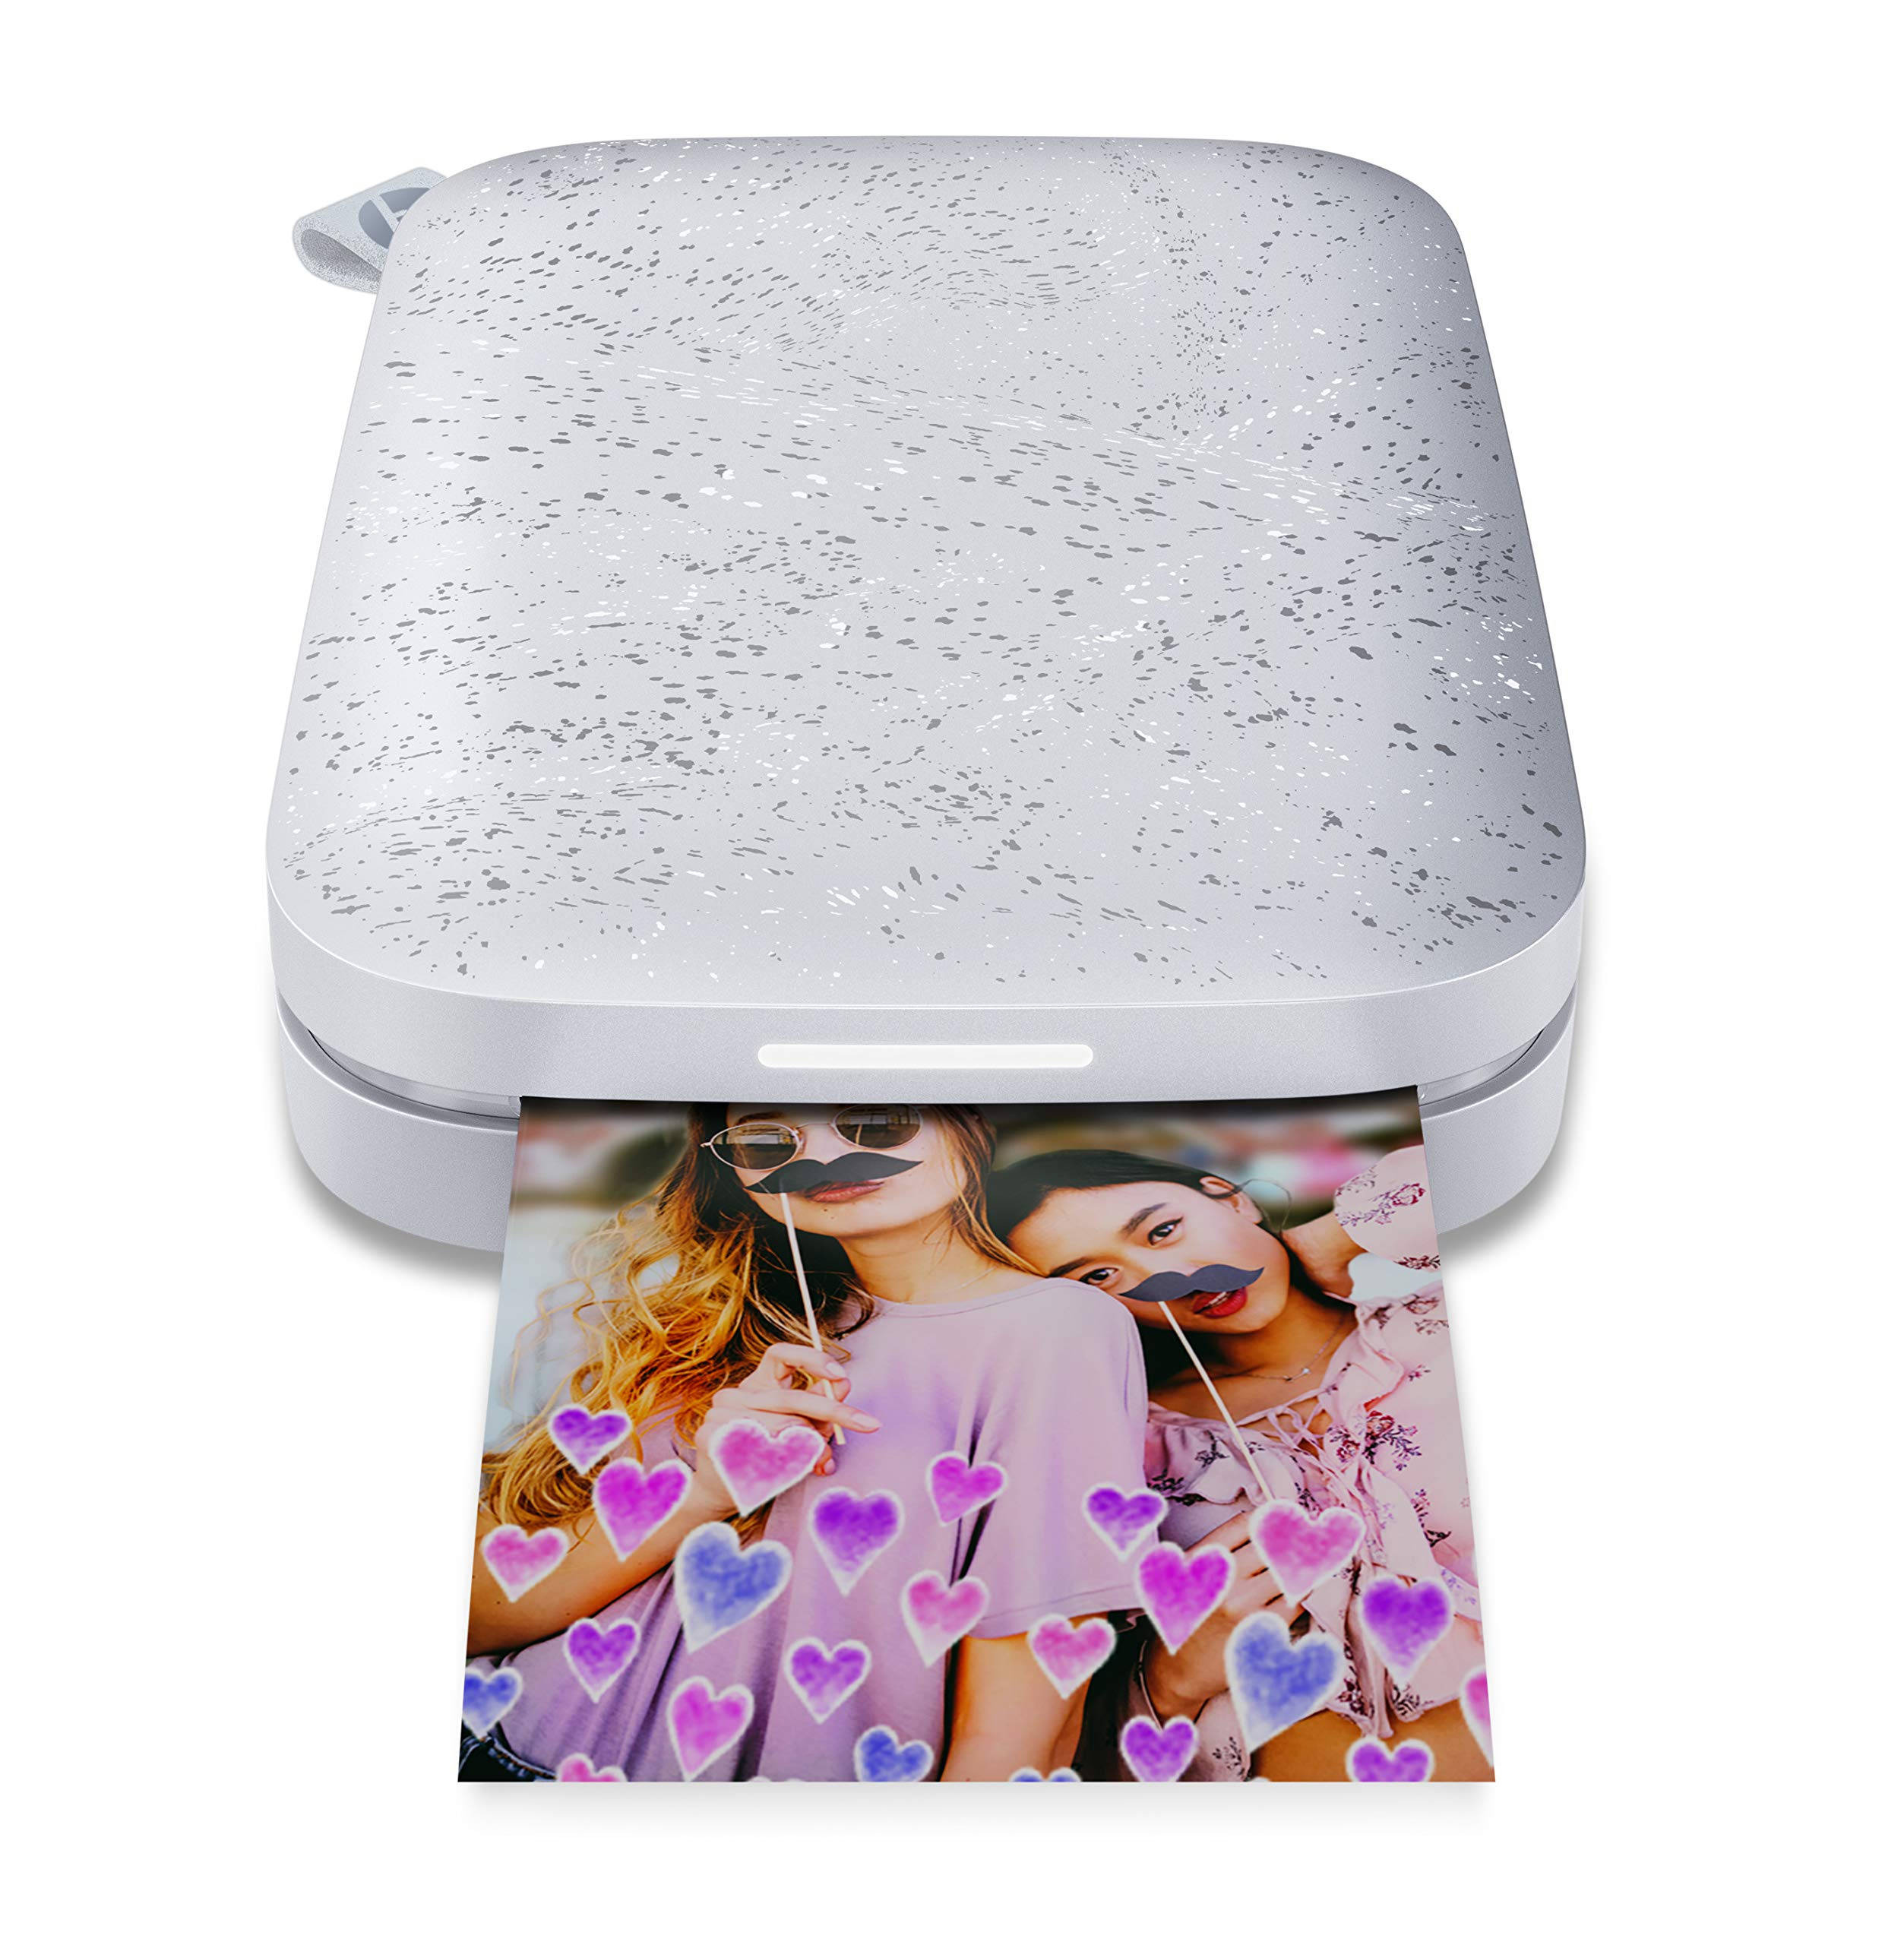 HP Sprocket Portable Photo Printer (2nd Edition) - Instantly Print 2x3 Sticky-Backed Photos from Your Phone - [Luna Pearl] [1AS85A]